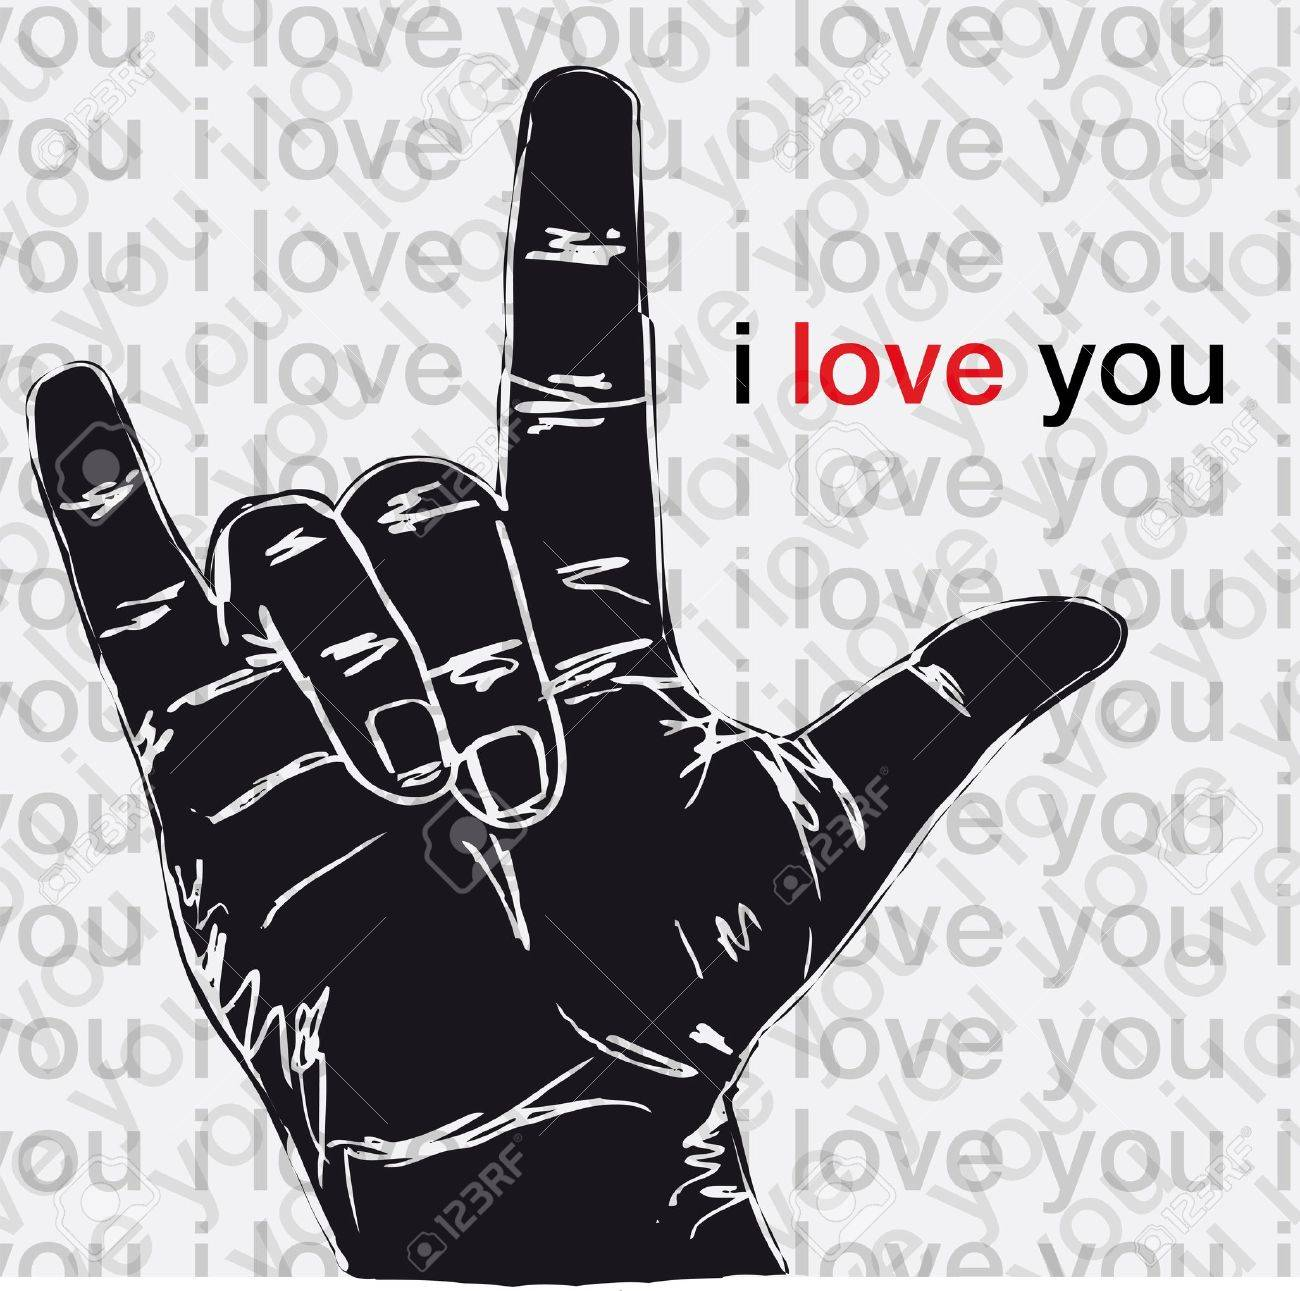 I love you hand symbolic gestures illustration Stock Vector - 13014118